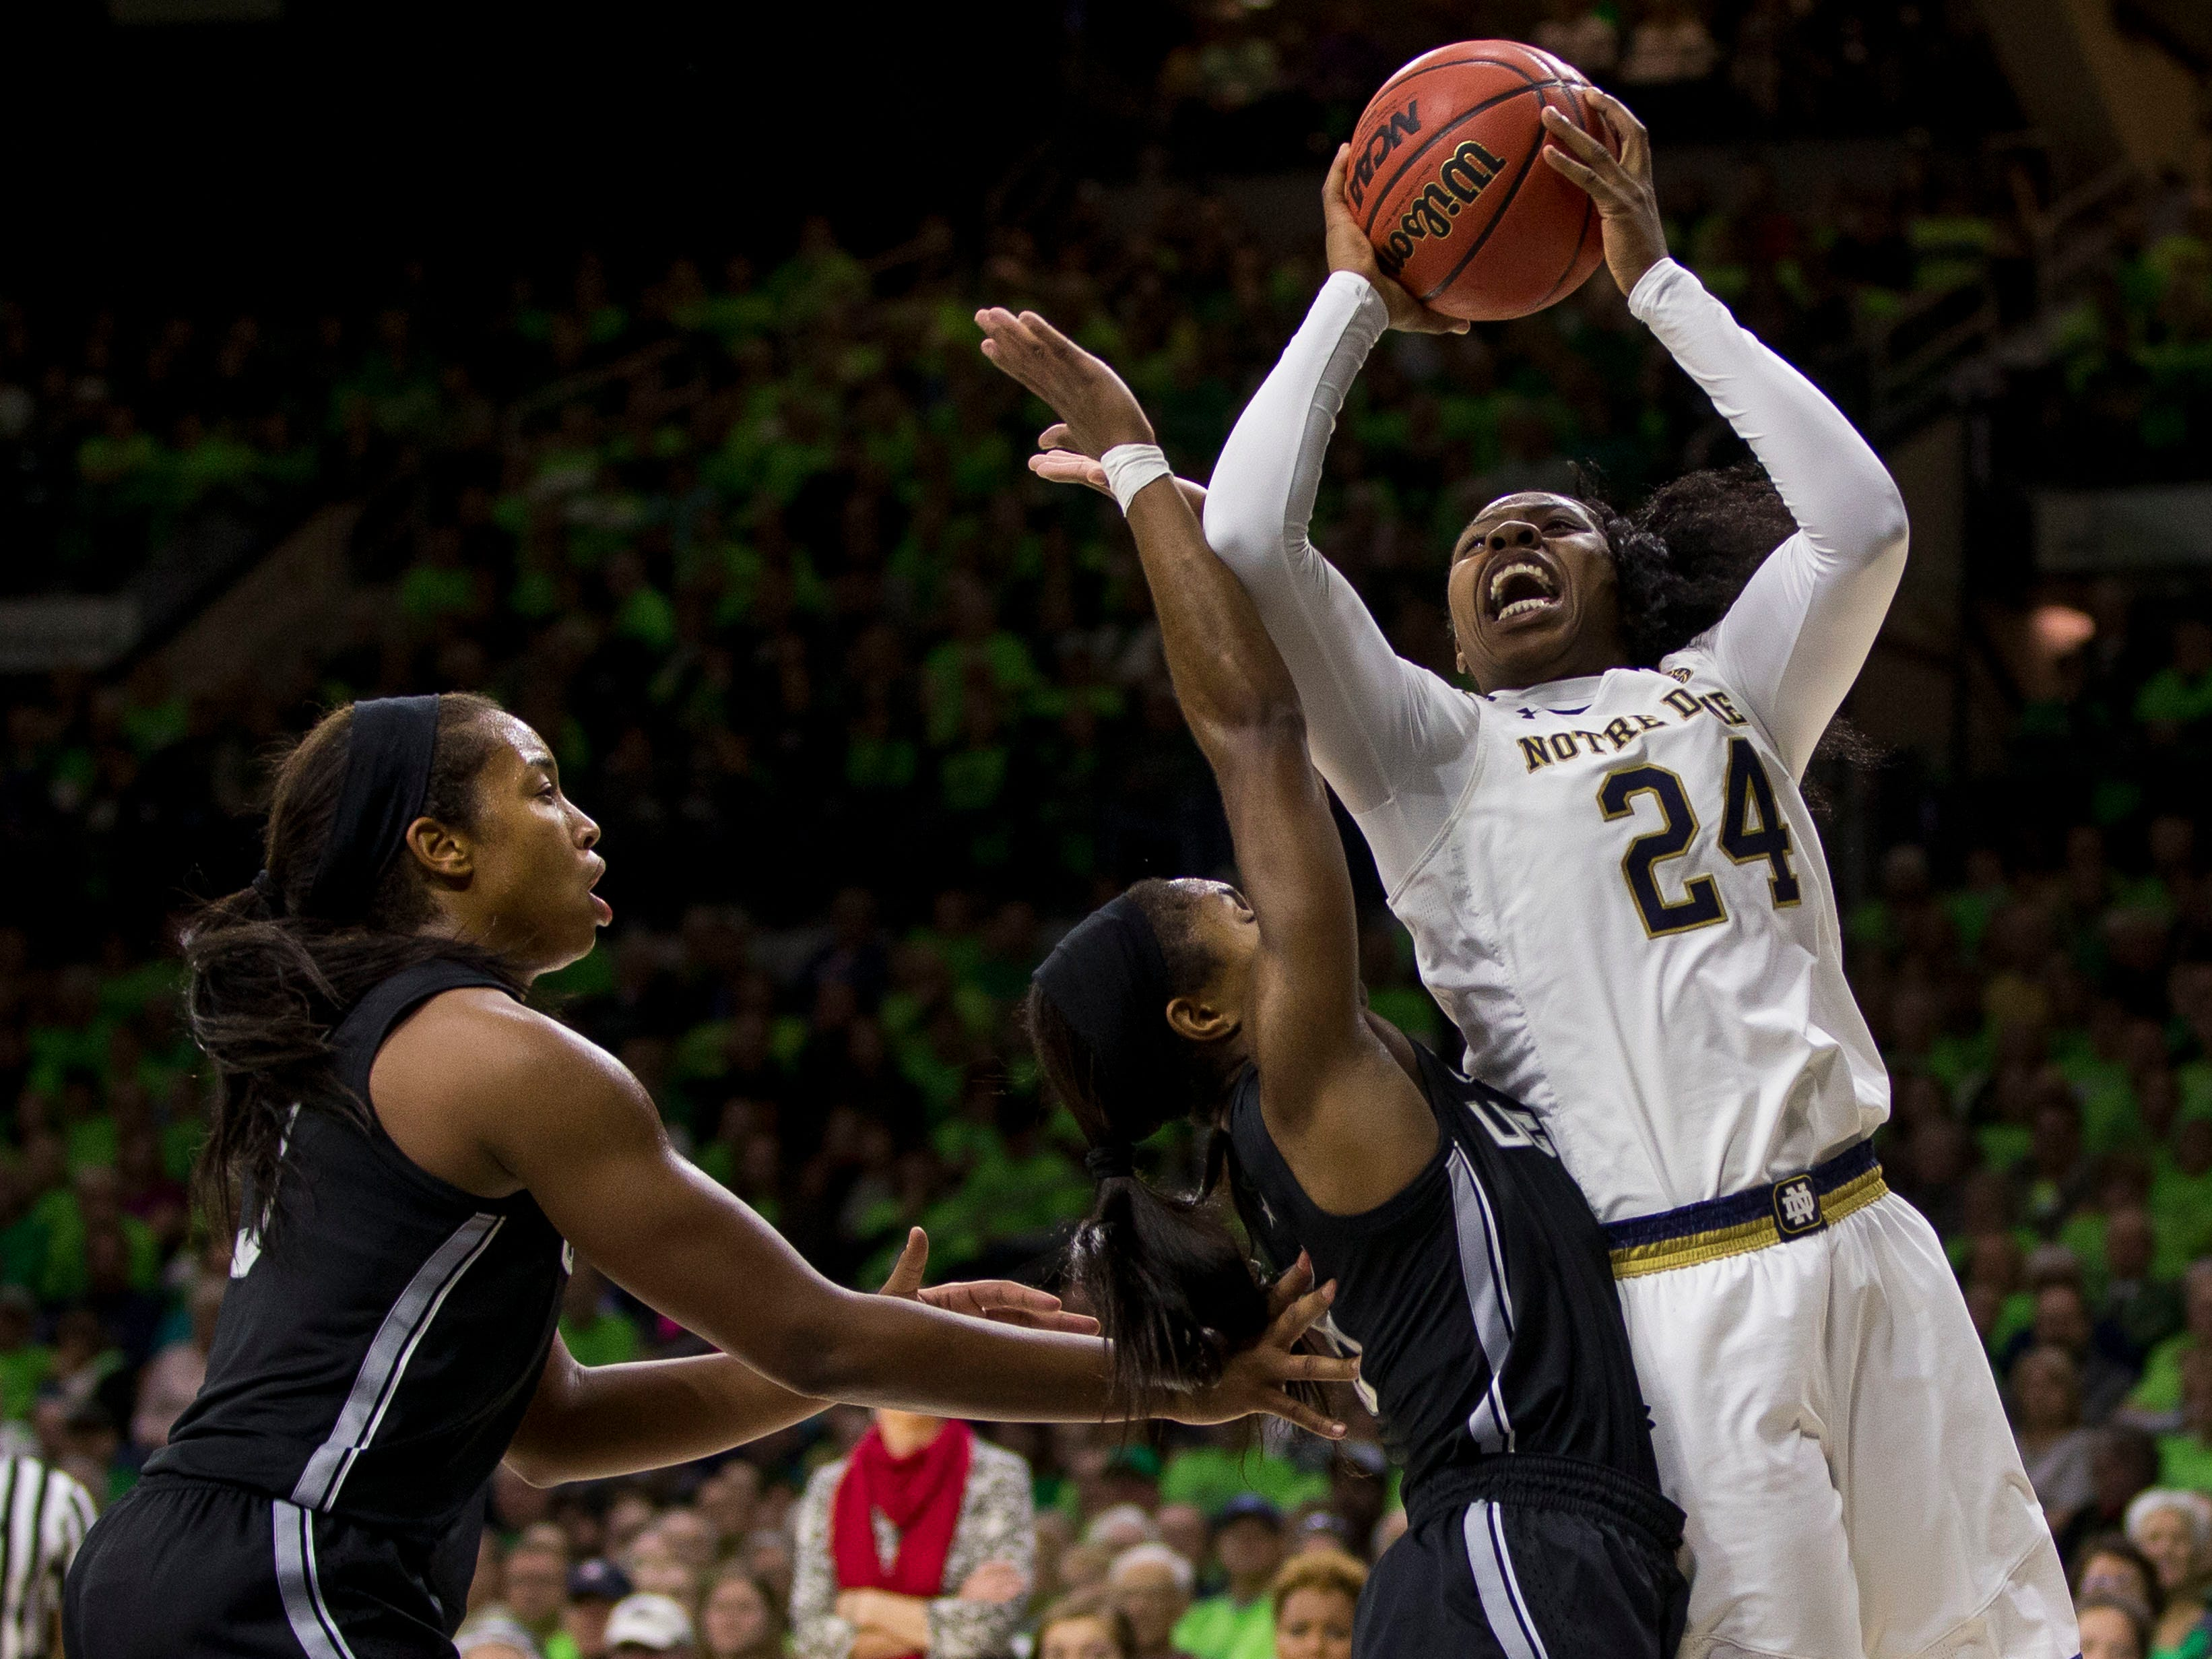 Notre Dame's Arike Ogunbowale (24) shoots over Connecticut's Crystal Dangerfield, center, and Megan Walker during the second half of an NCAA college basketball game Sunday, Dec. 2, 2018, in South Bend, Ind. Connecticut won 89-71.